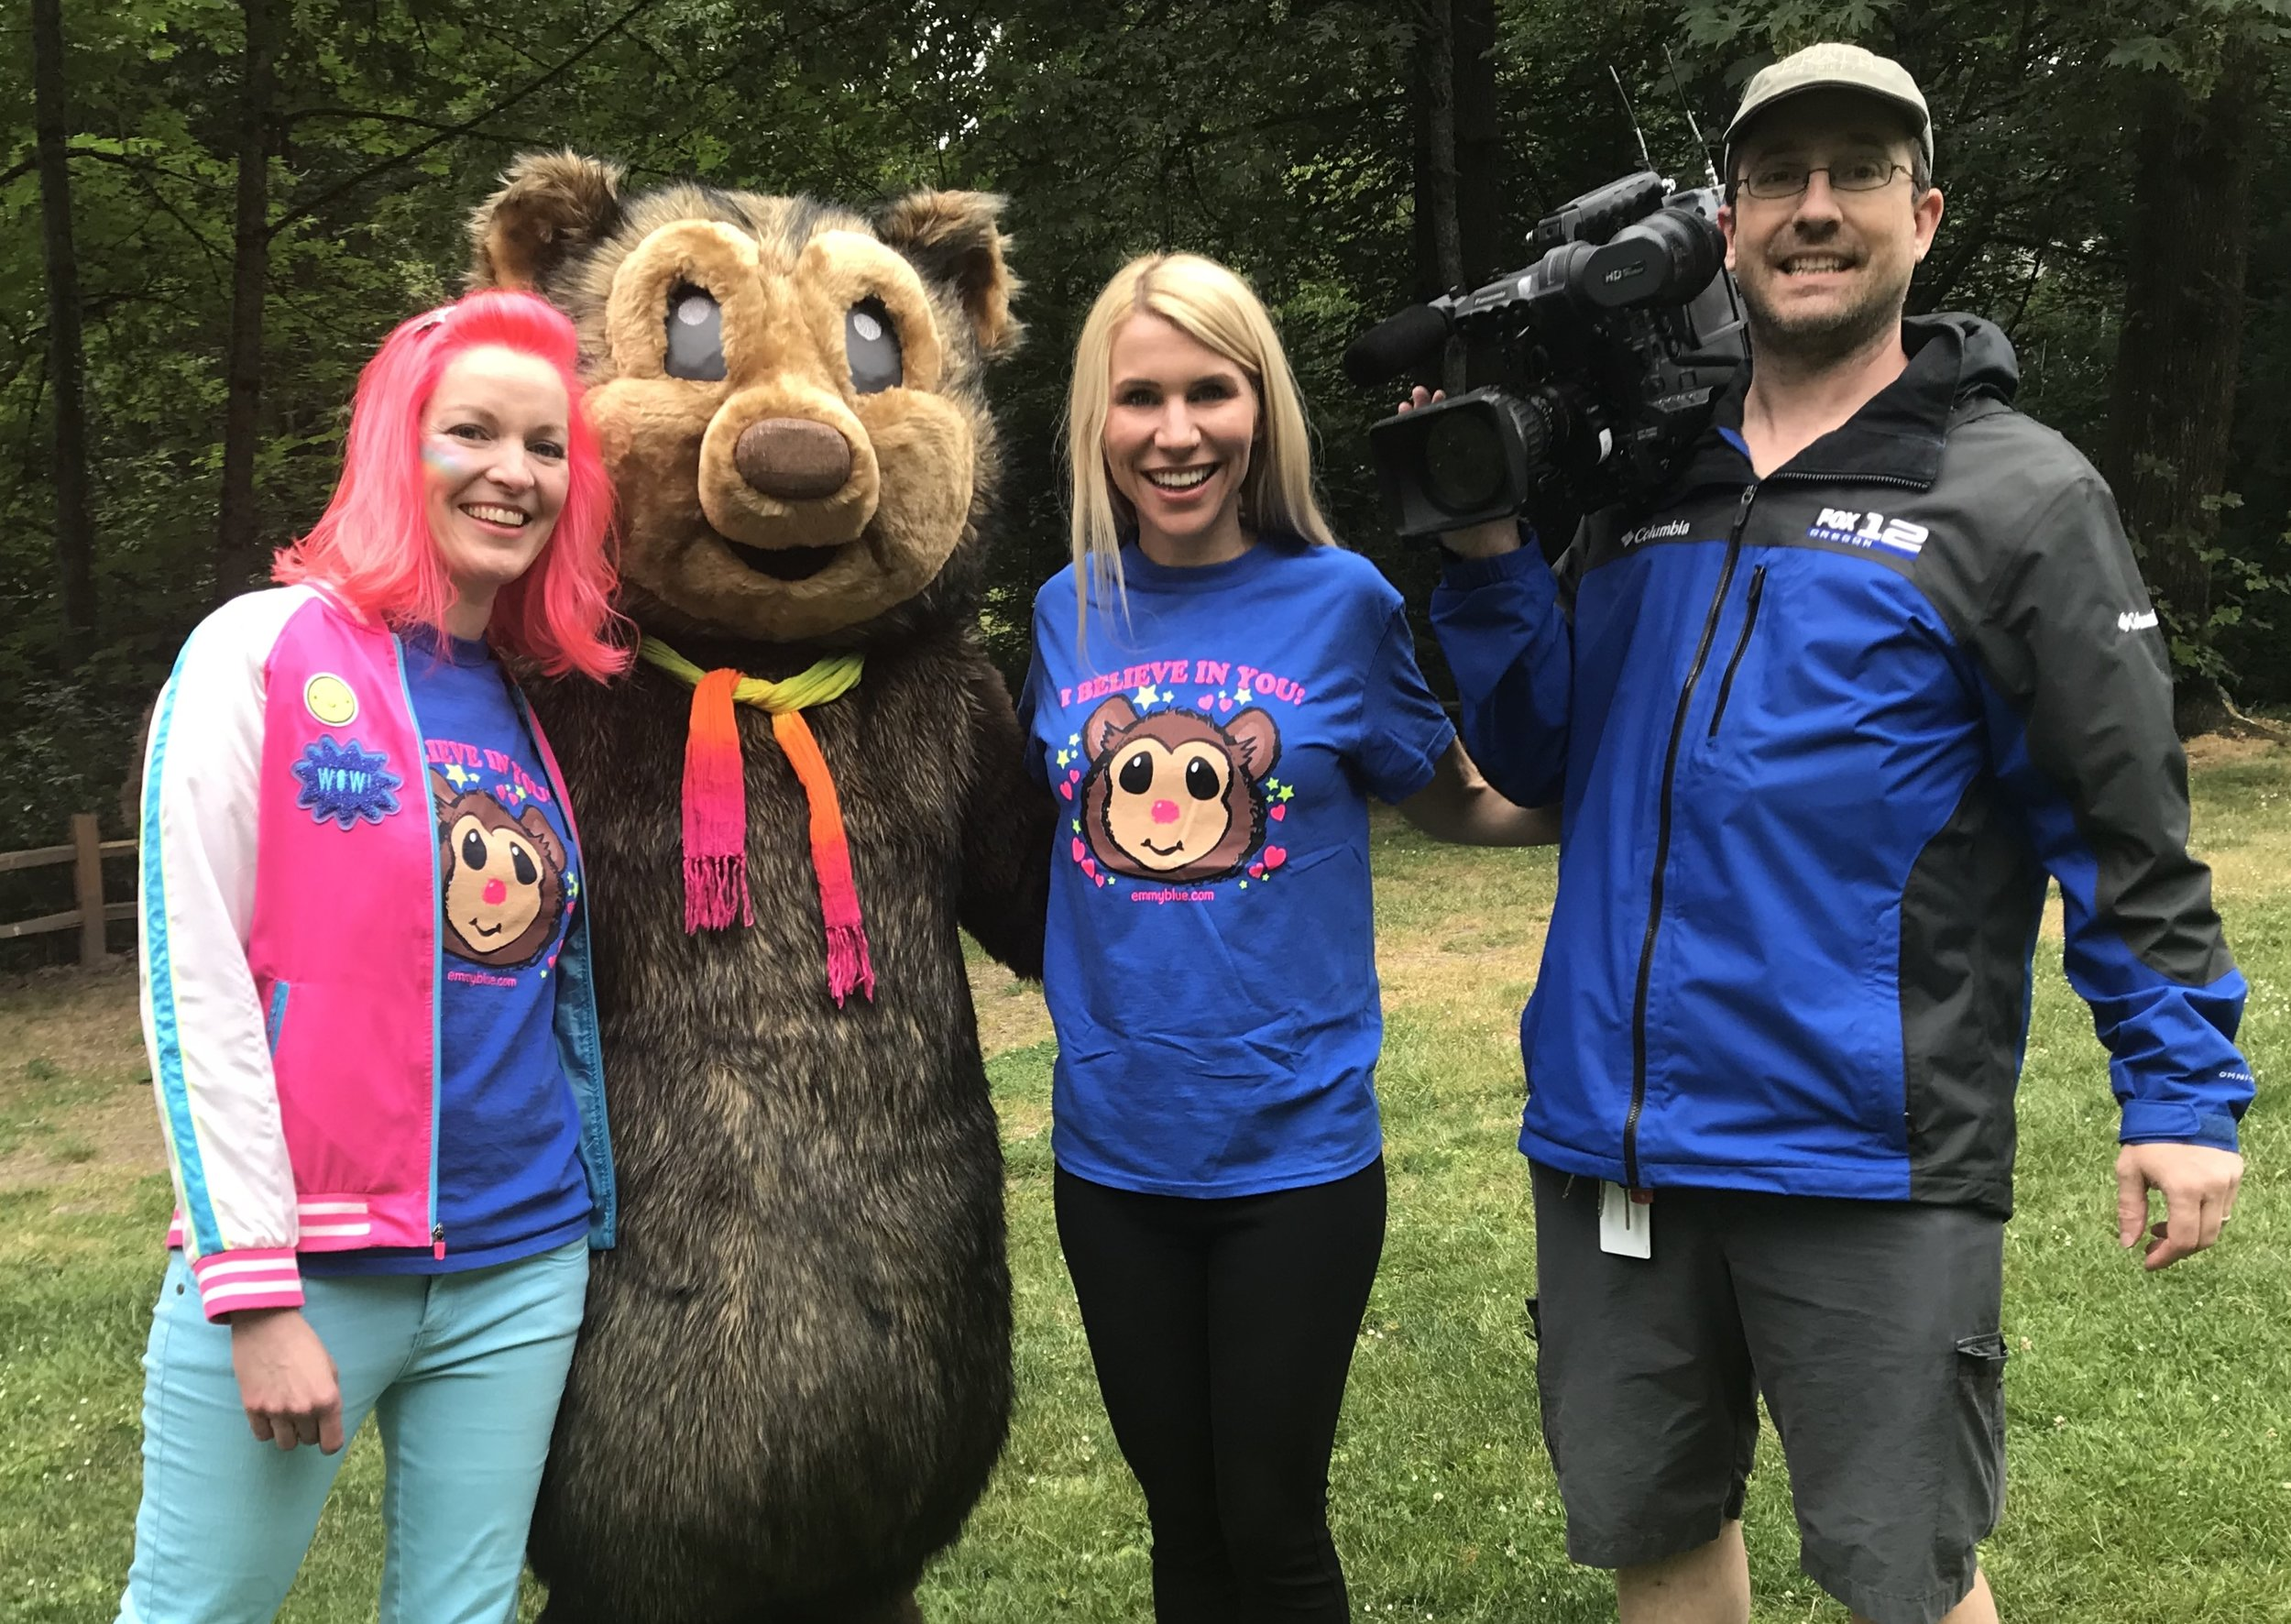 Emmy Blue, the Squatchie and Stephanie Kralevich from FOX 12